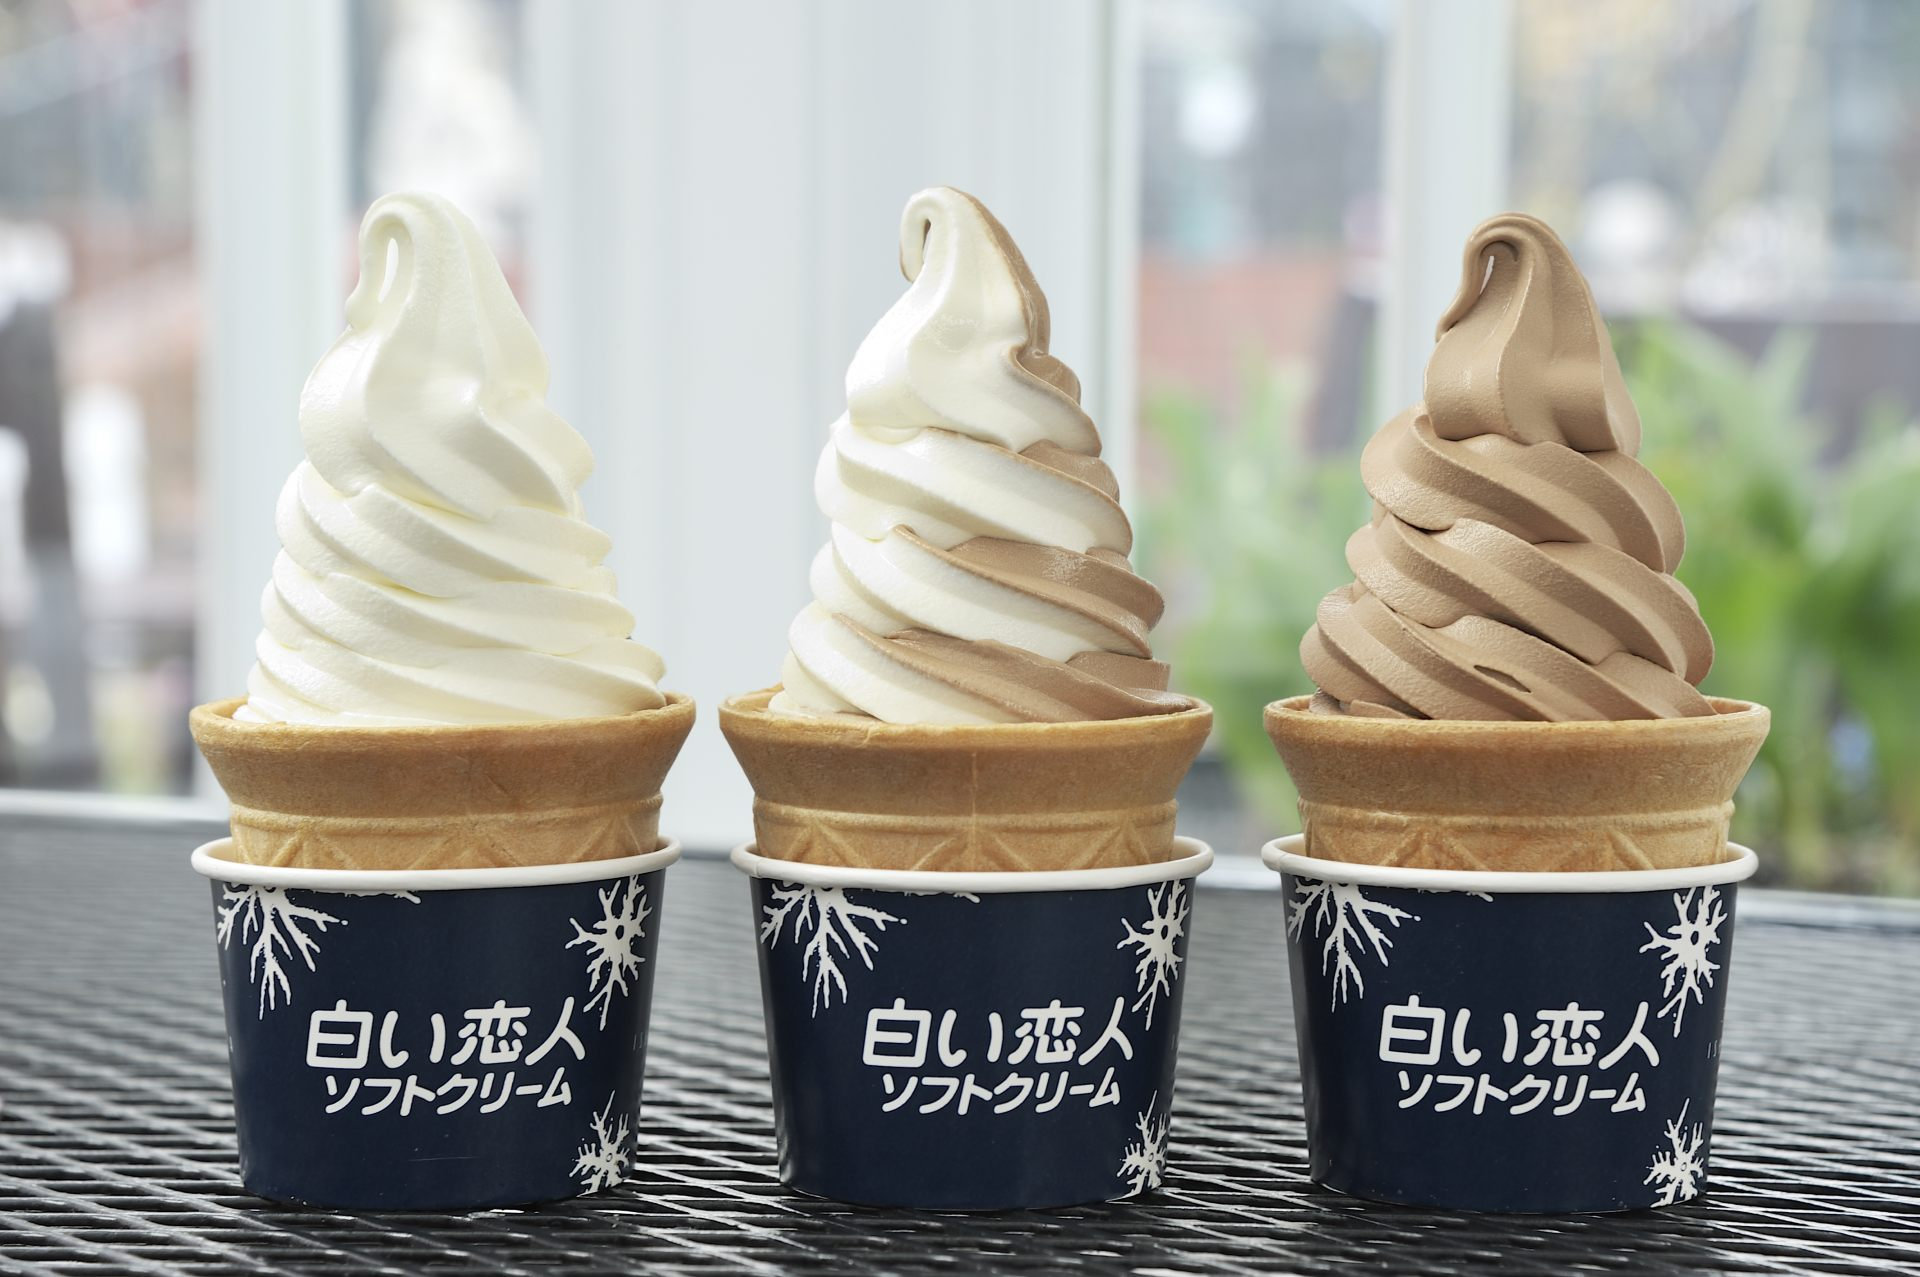 Soft-serve ice cream made using Shiroi Koibito chocolate